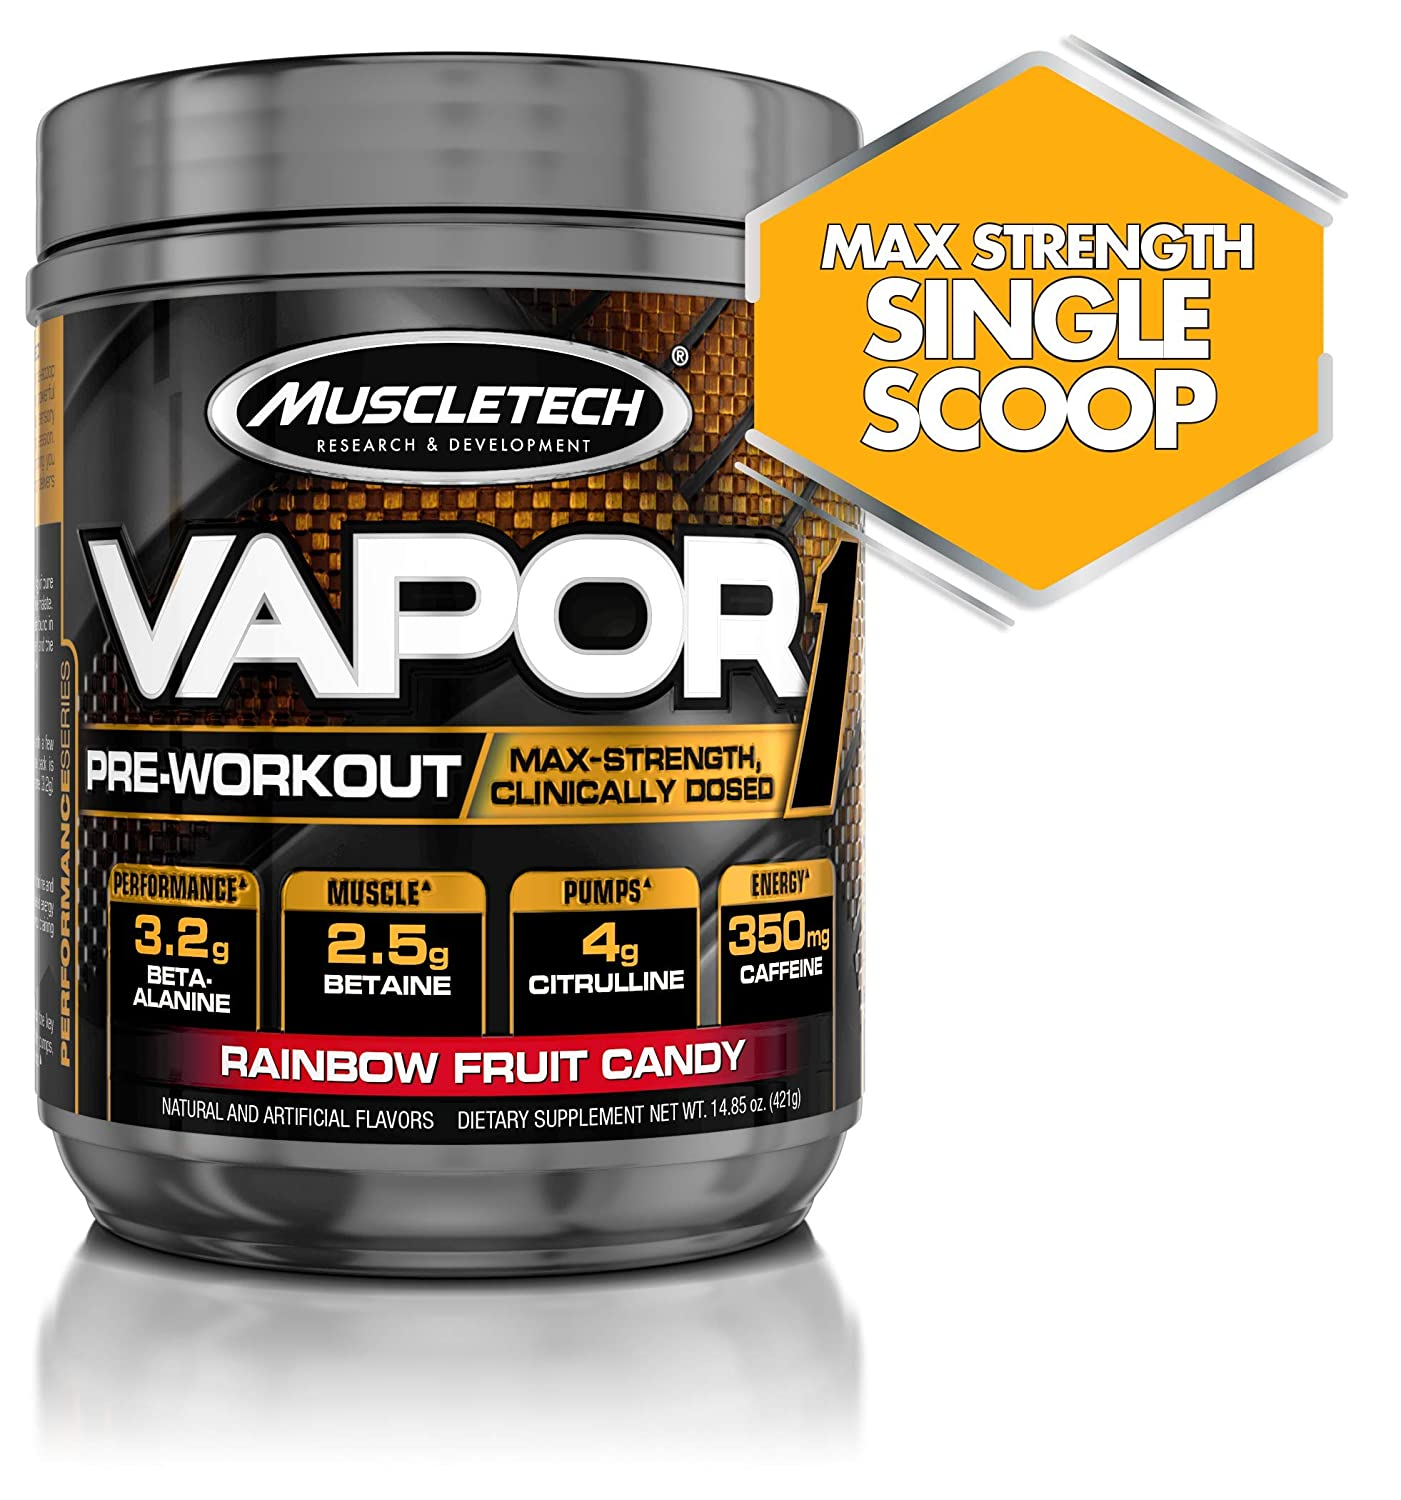 Muscletech Vapor One Pre Workout Powder, One Scoop Formula with Betaine HCL, Creatine and Beta Alanine to Boost Energy Amplify Muscle Building, Rainbow Fruit Candy, 20 Servings 14.8oz